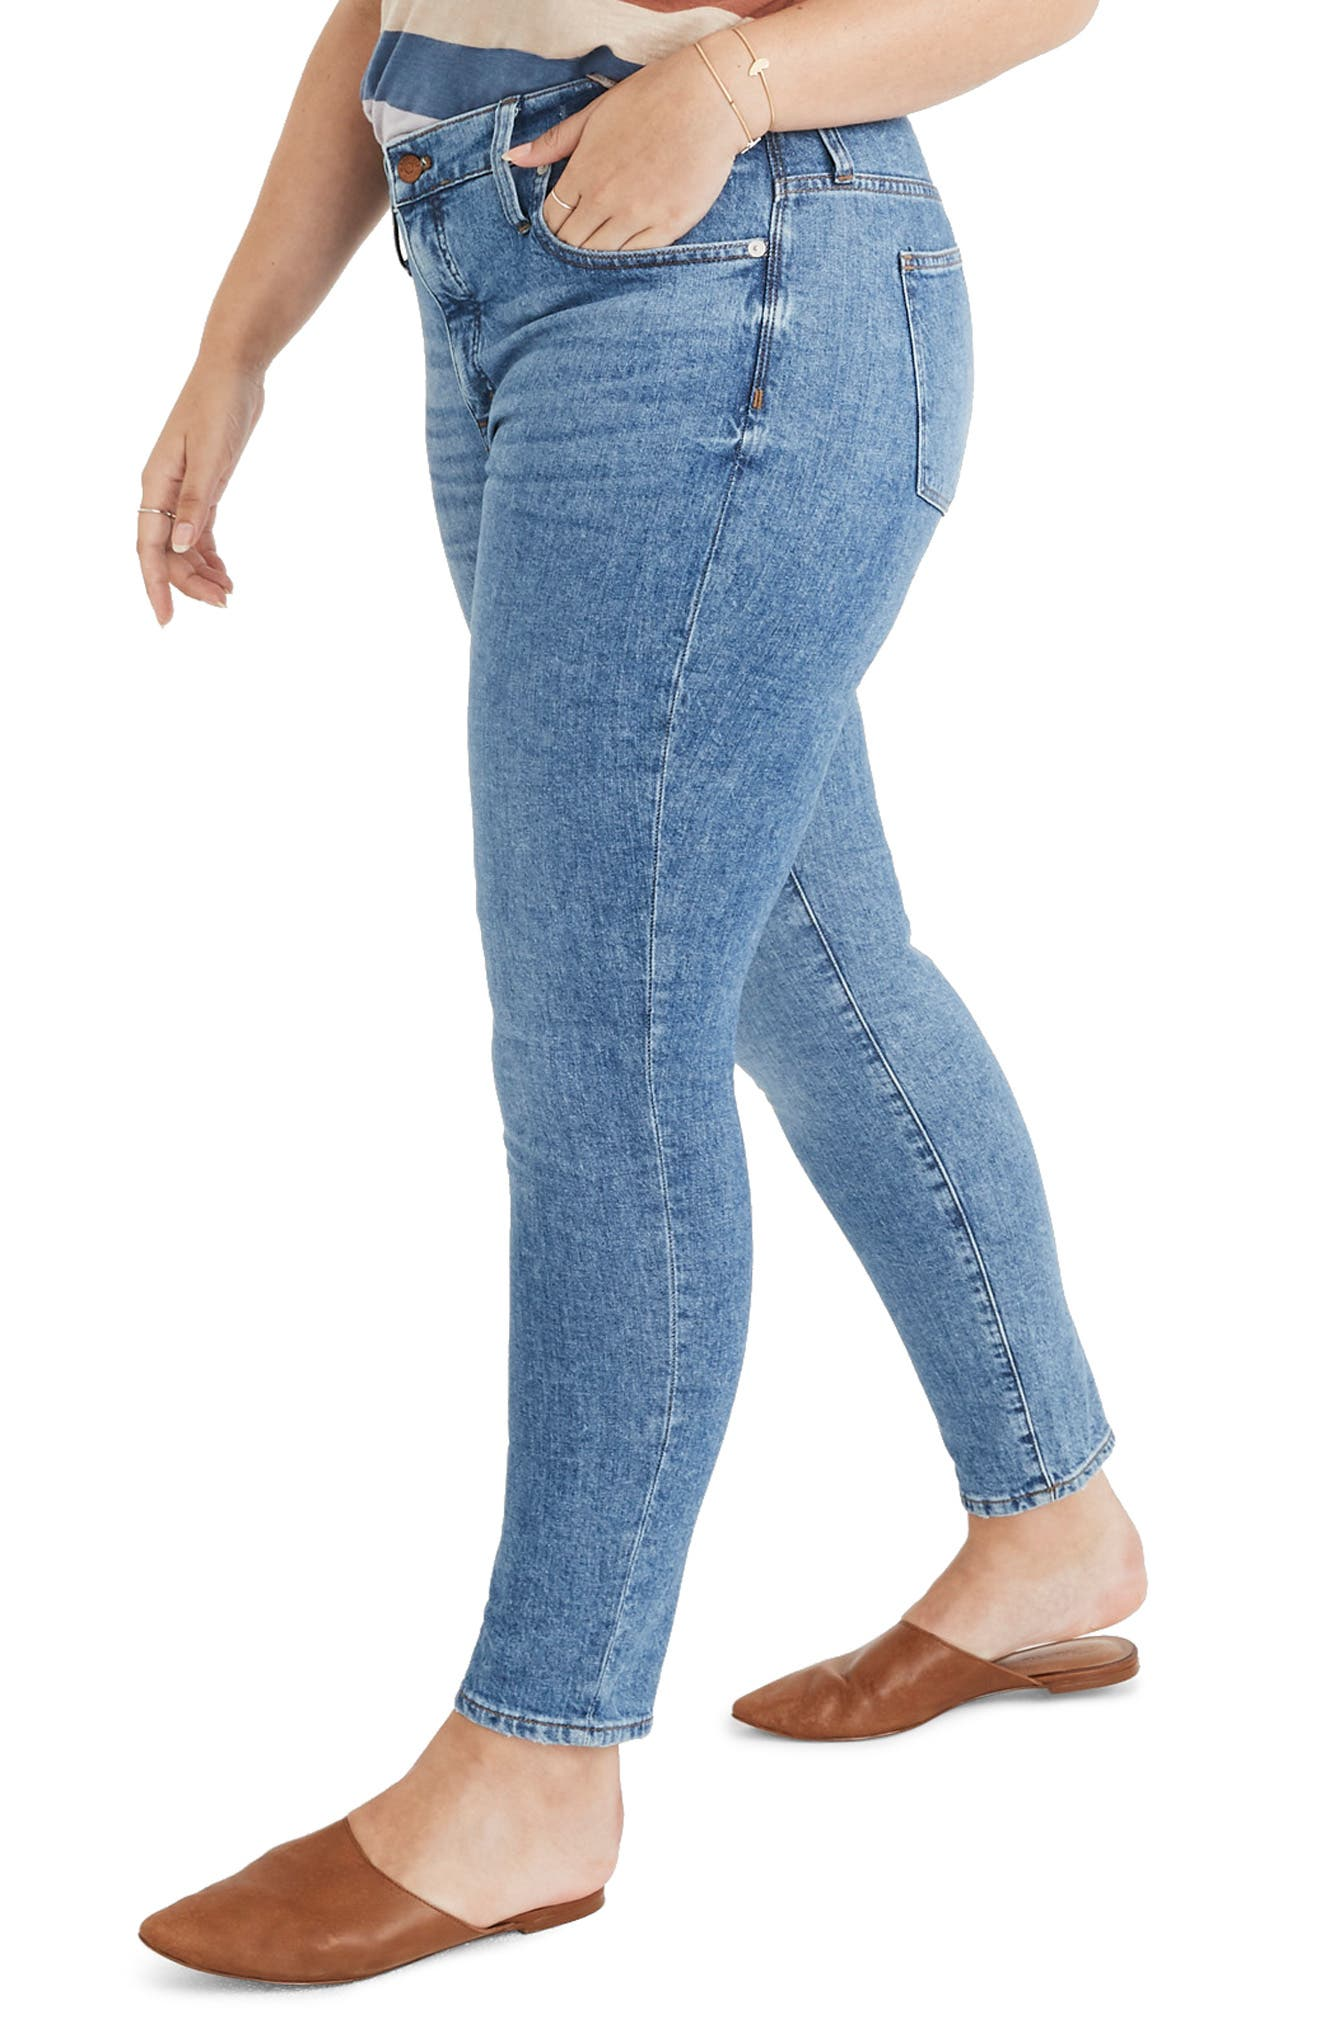 9-Inch High Waist Stretch Skinny Jeans,                             Alternate thumbnail 8, color,                             REGINA